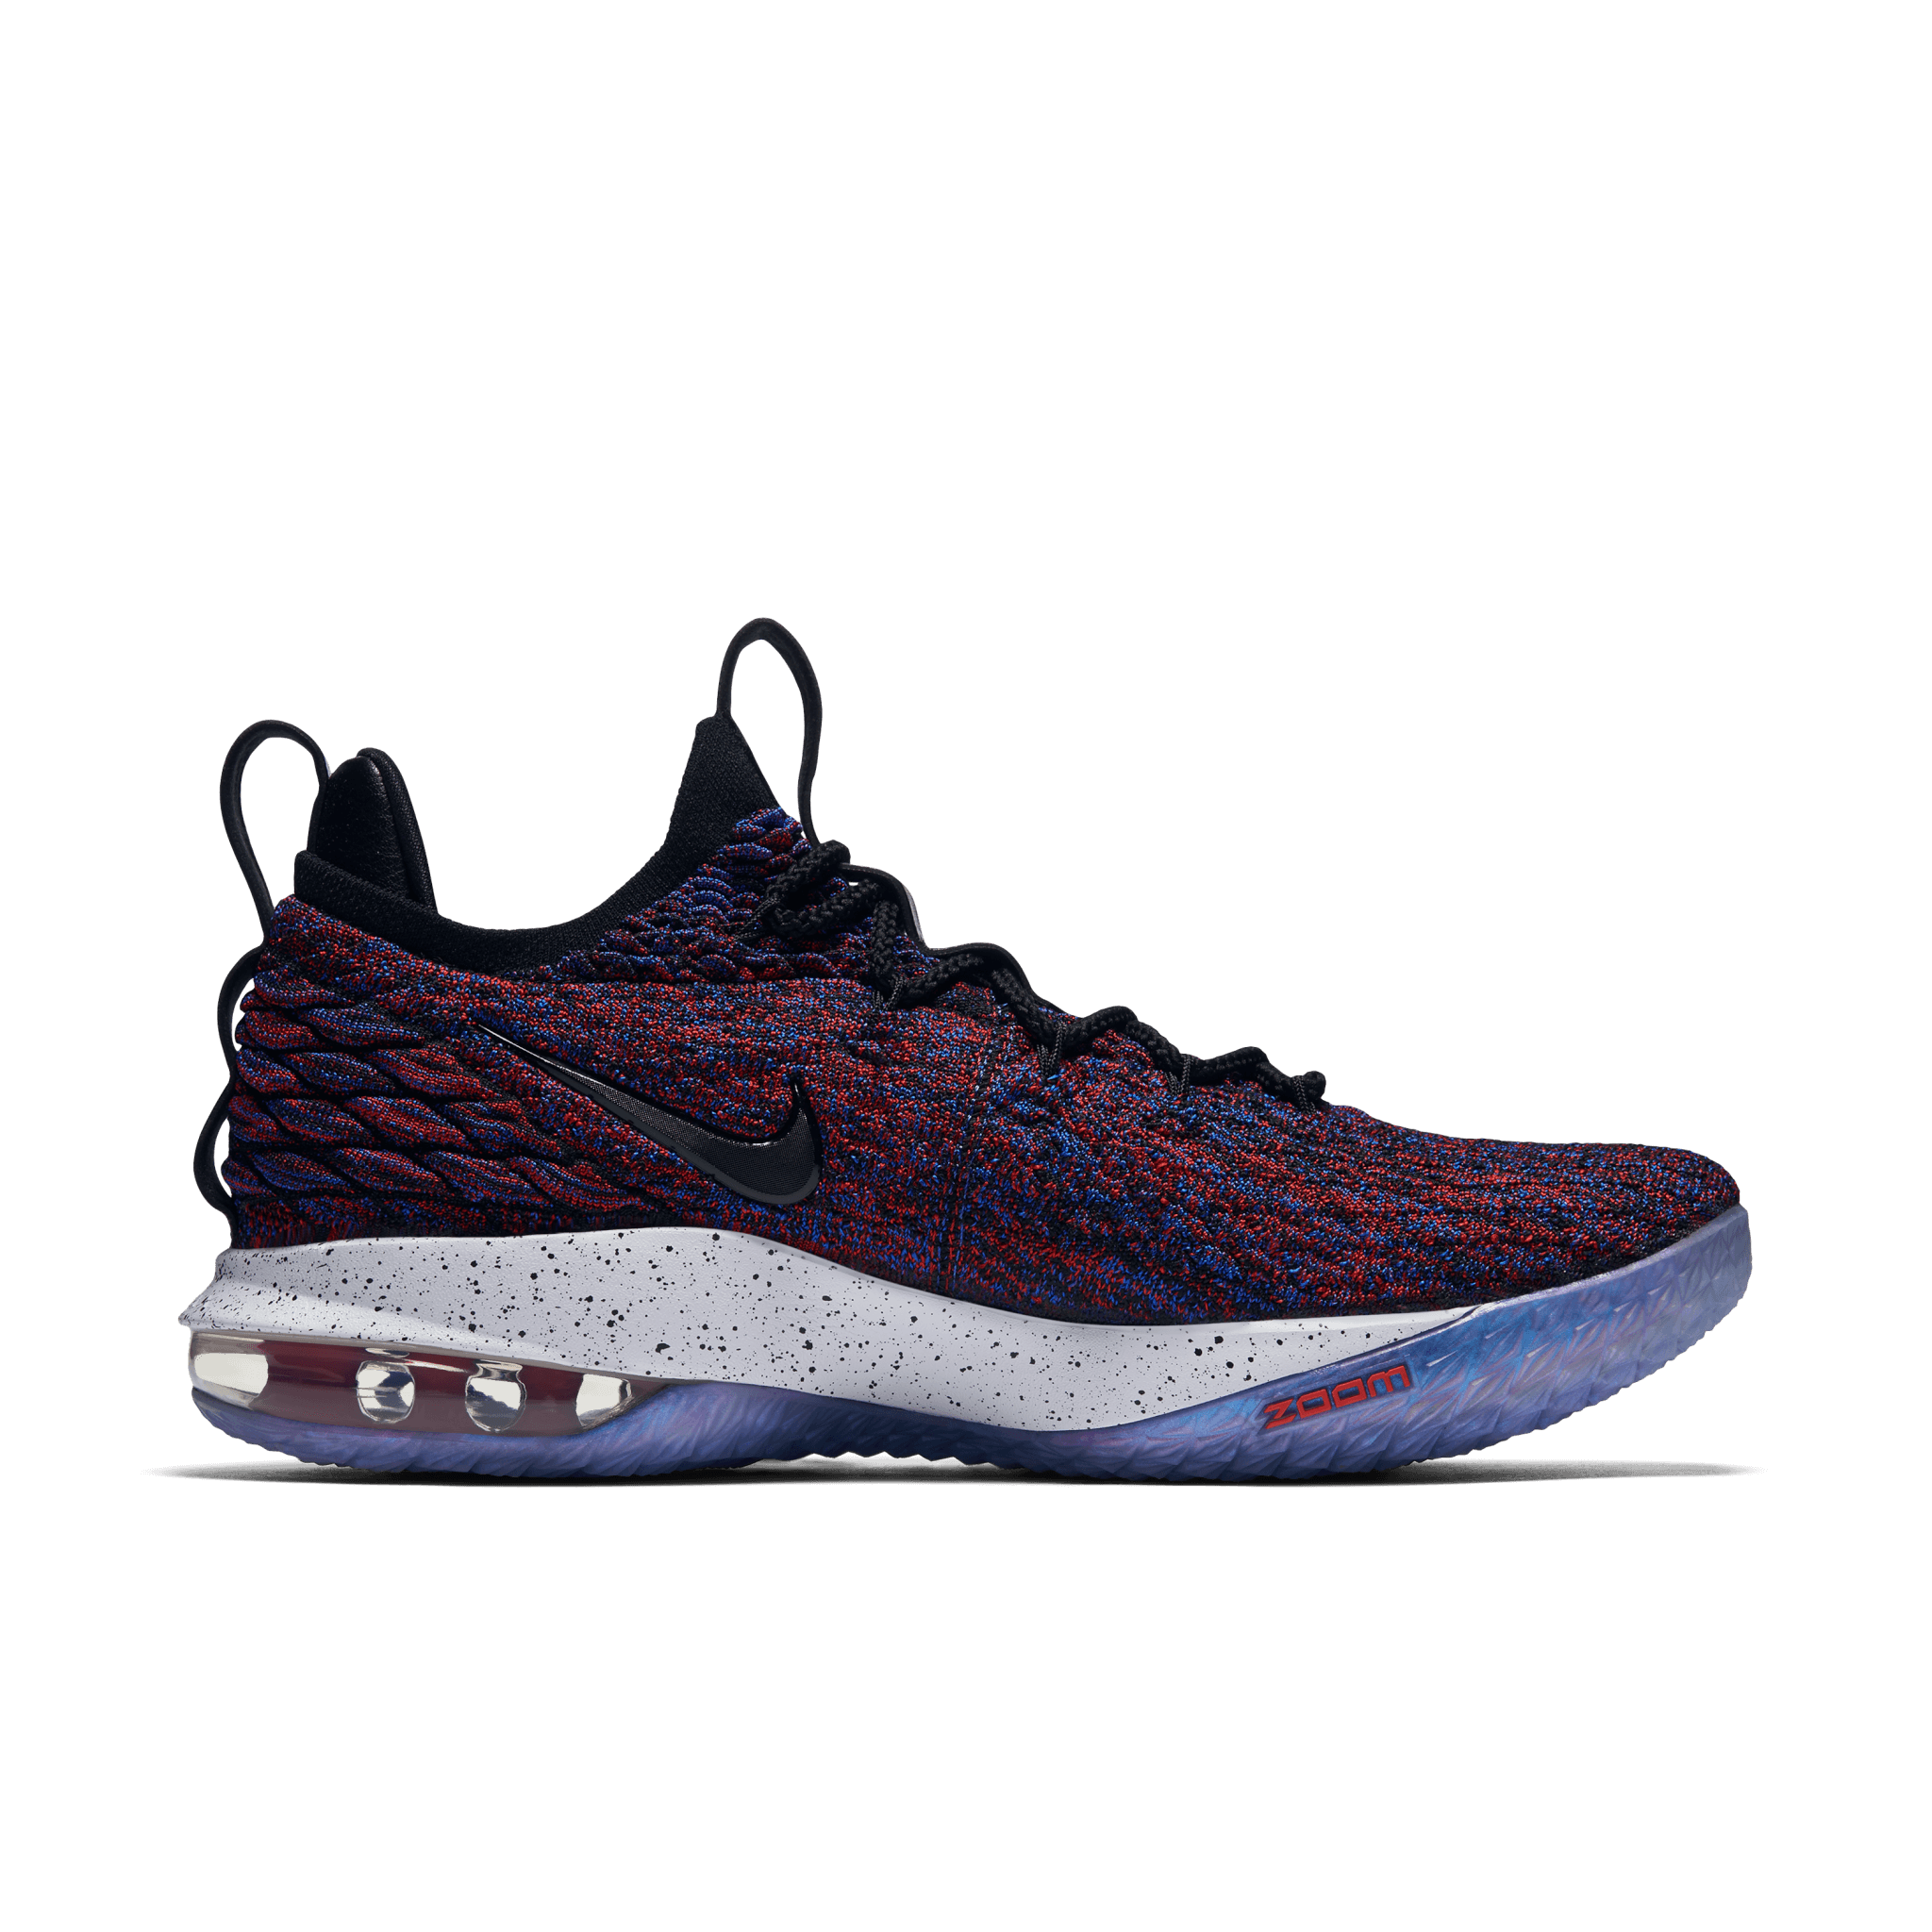 fc5447e46ea3 Nike Lebron 15 Low Performance Review